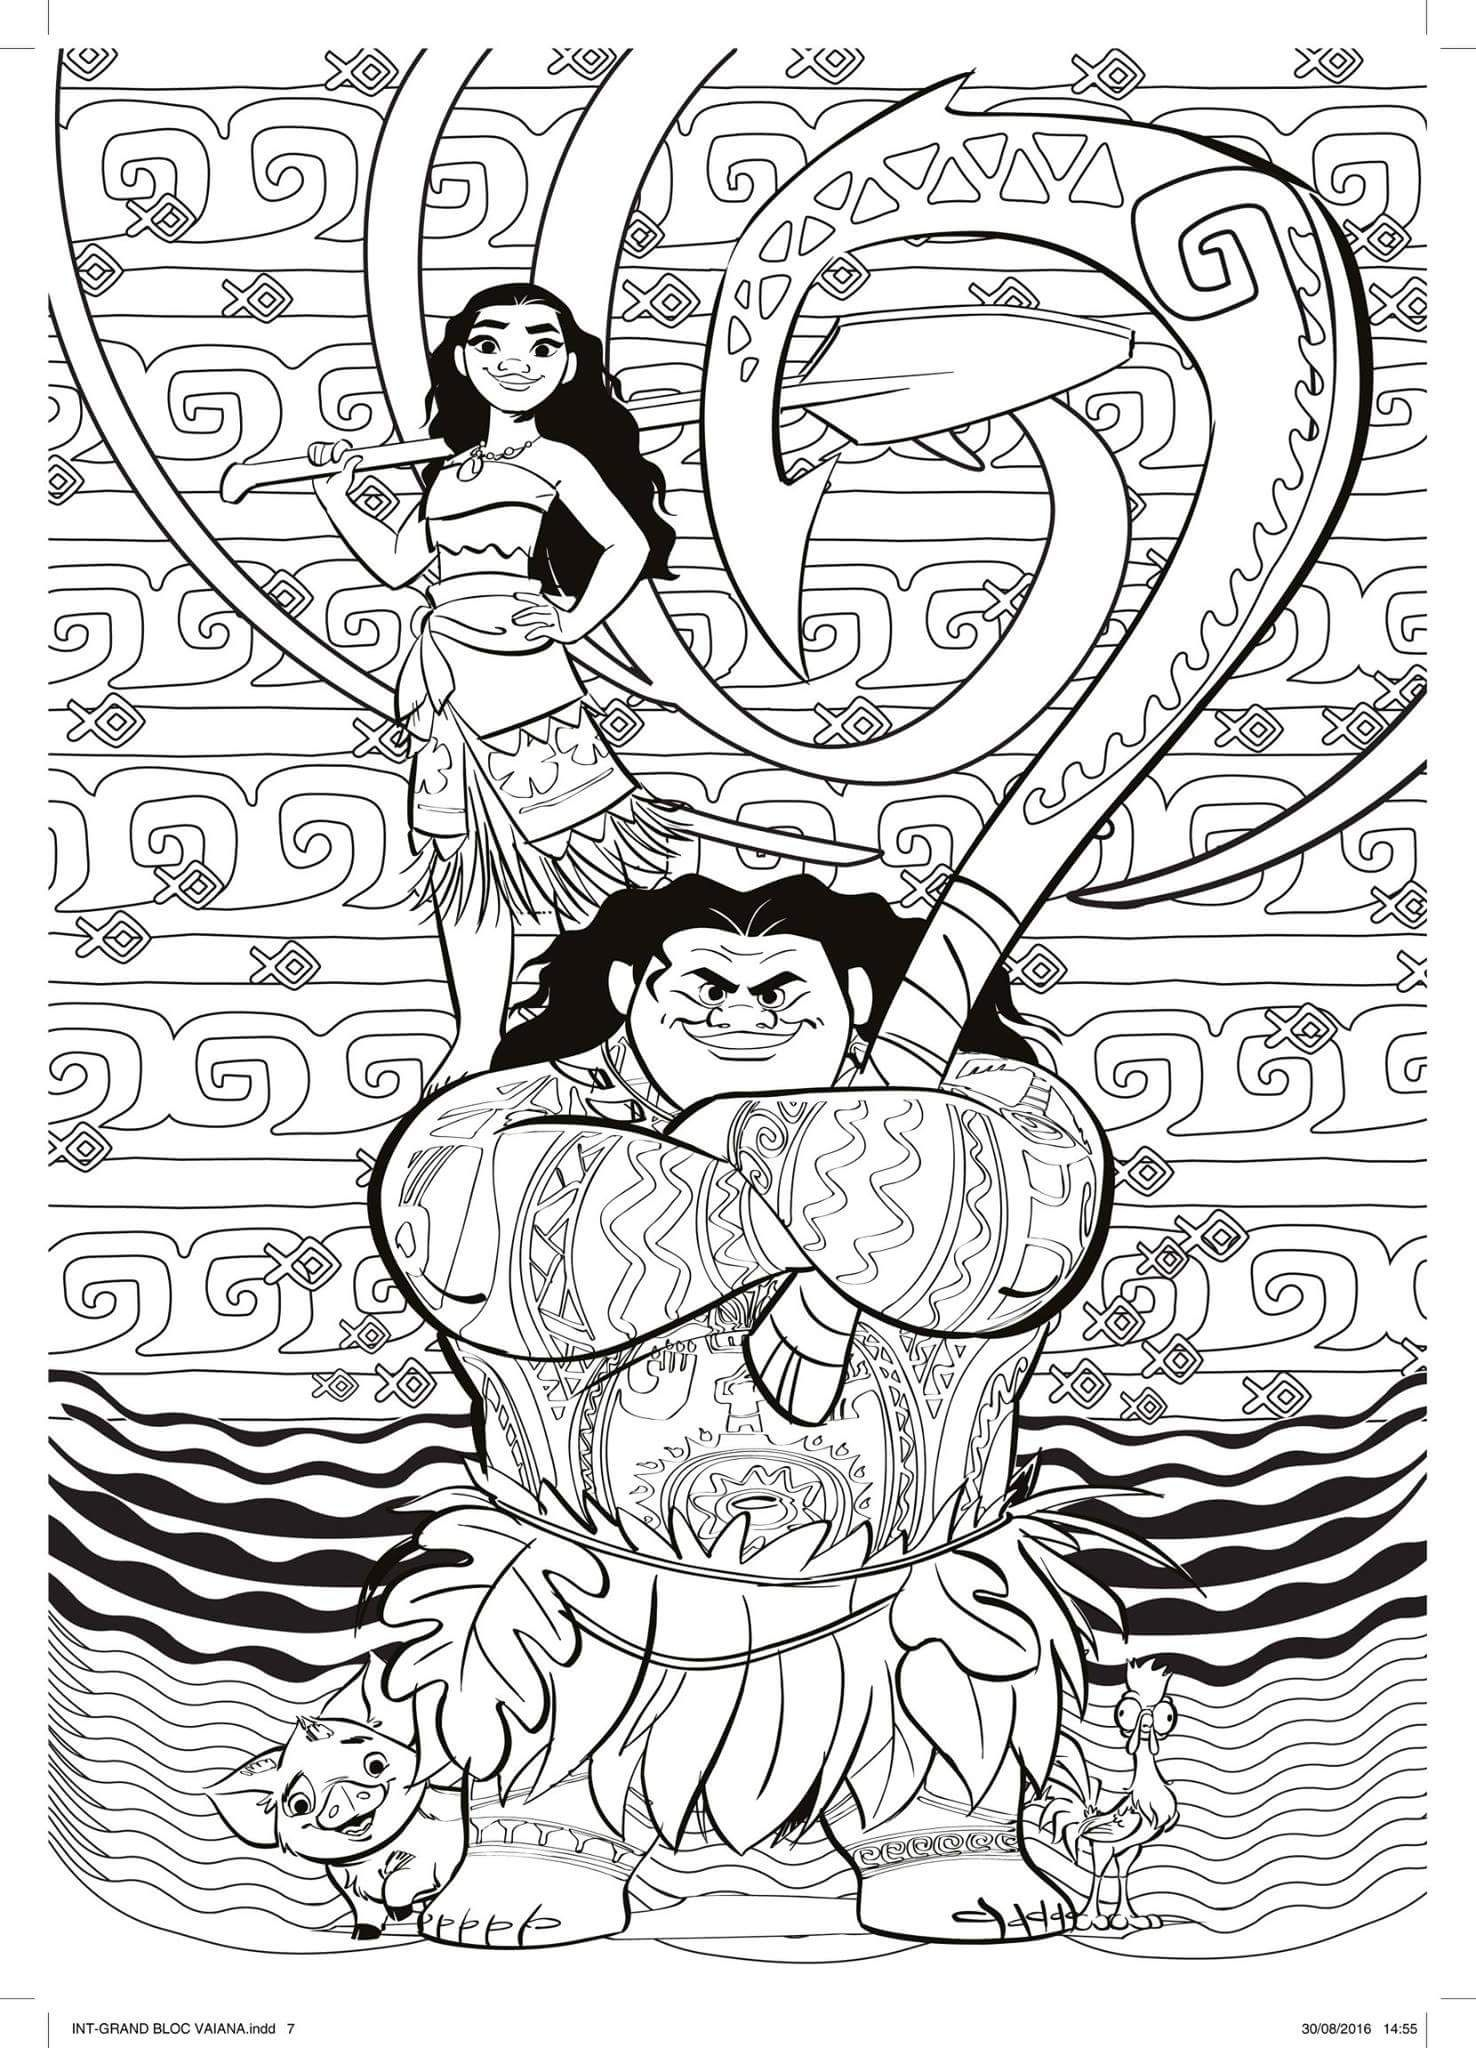 Pin By Smolbean On Disney Pixar And More Sailor Moon Coloring Pages Disney Coloring Pages Disney Princess Coloring Pages